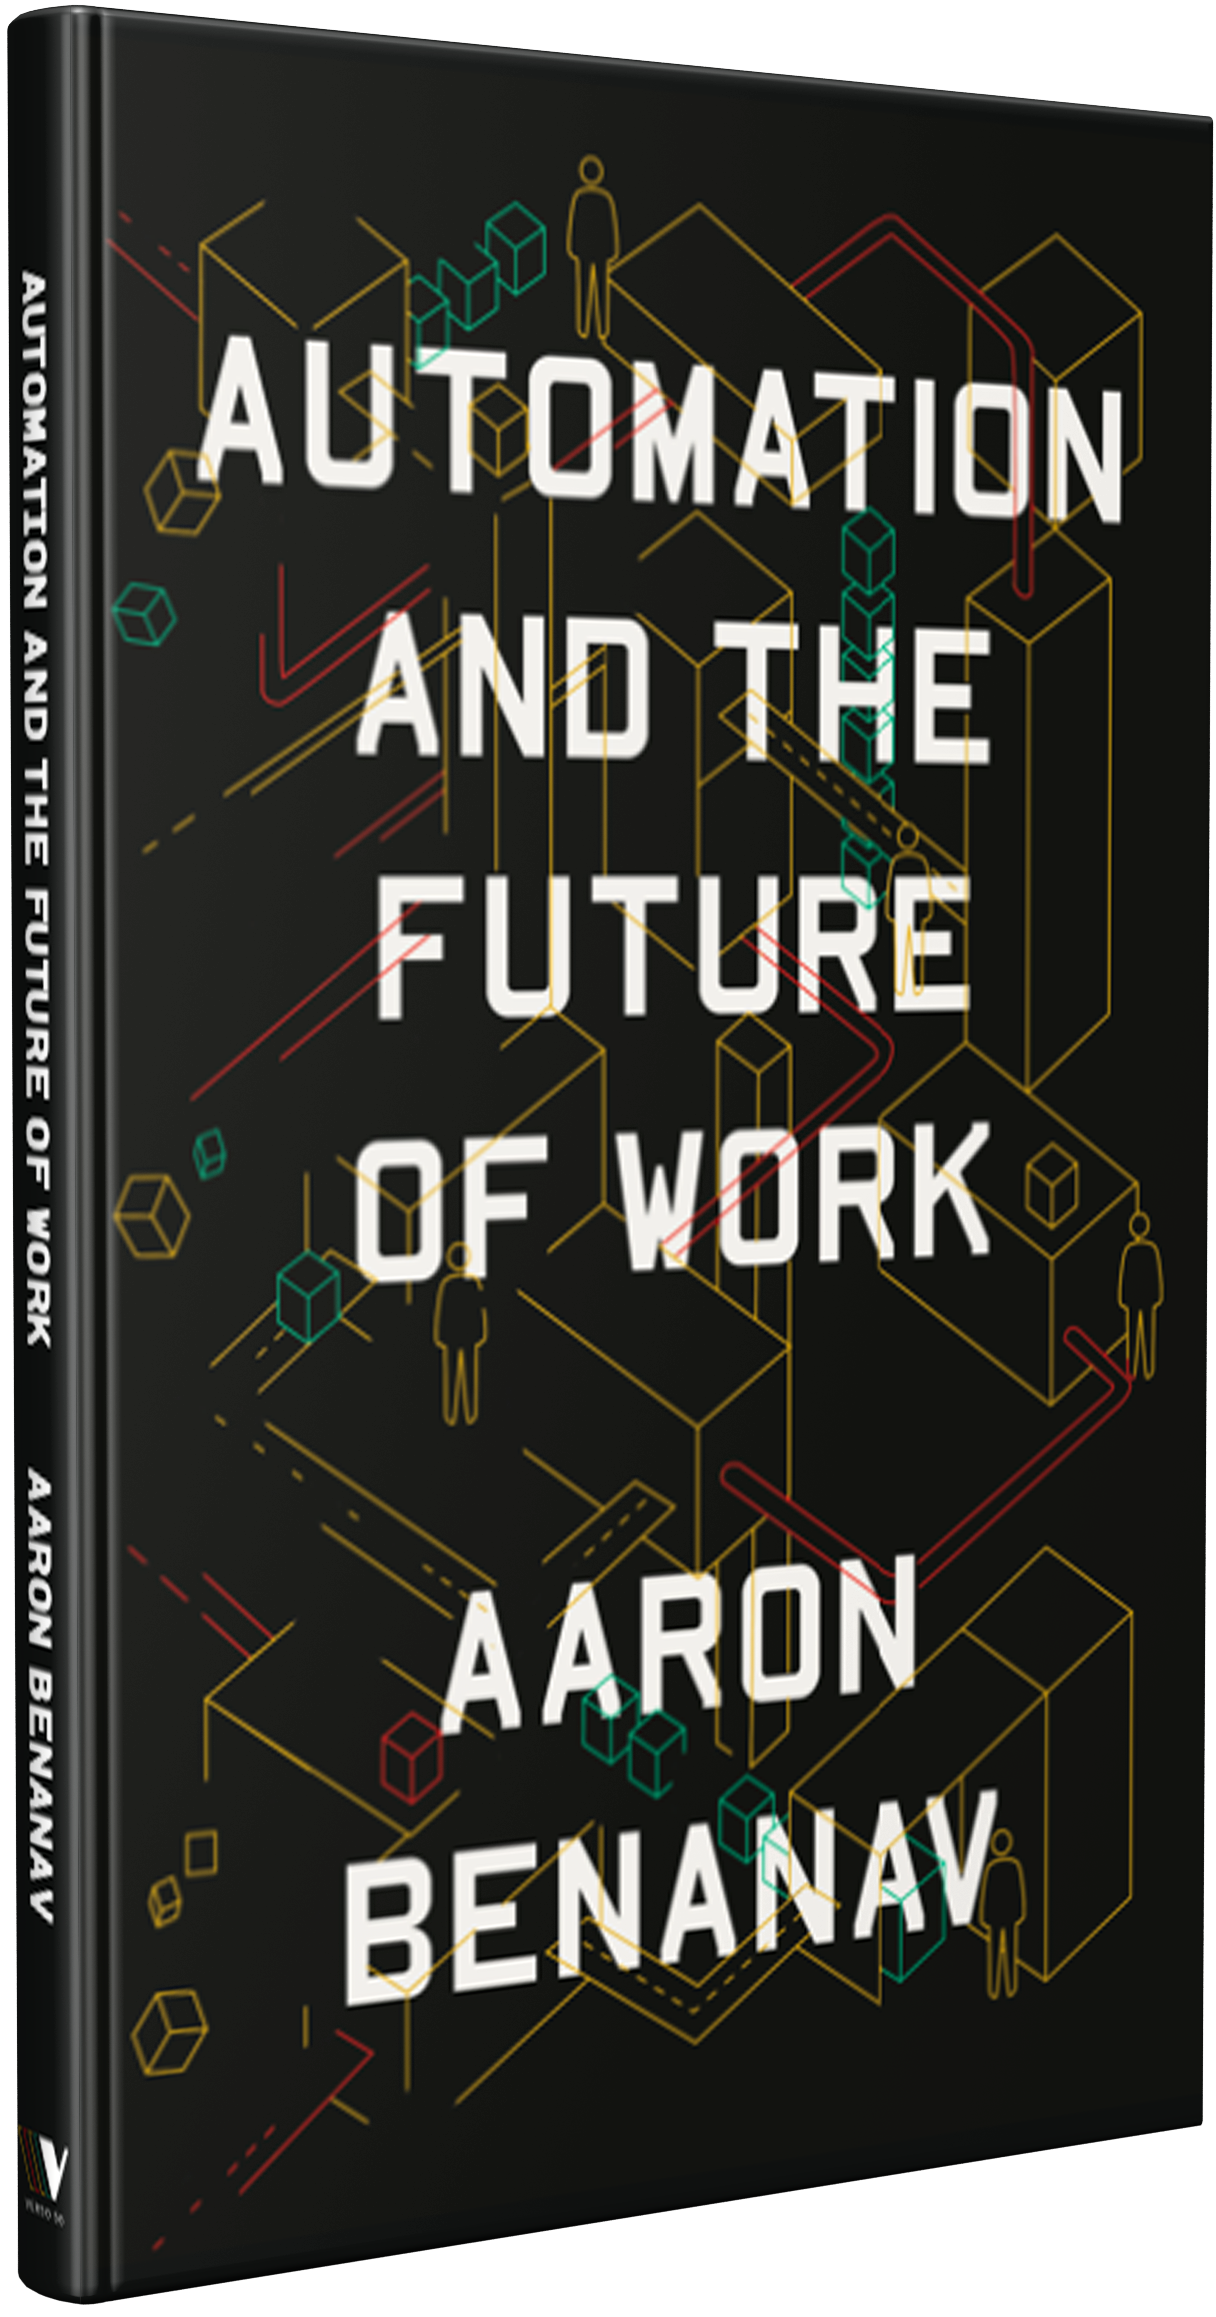 Automation_and_the_future_of_work